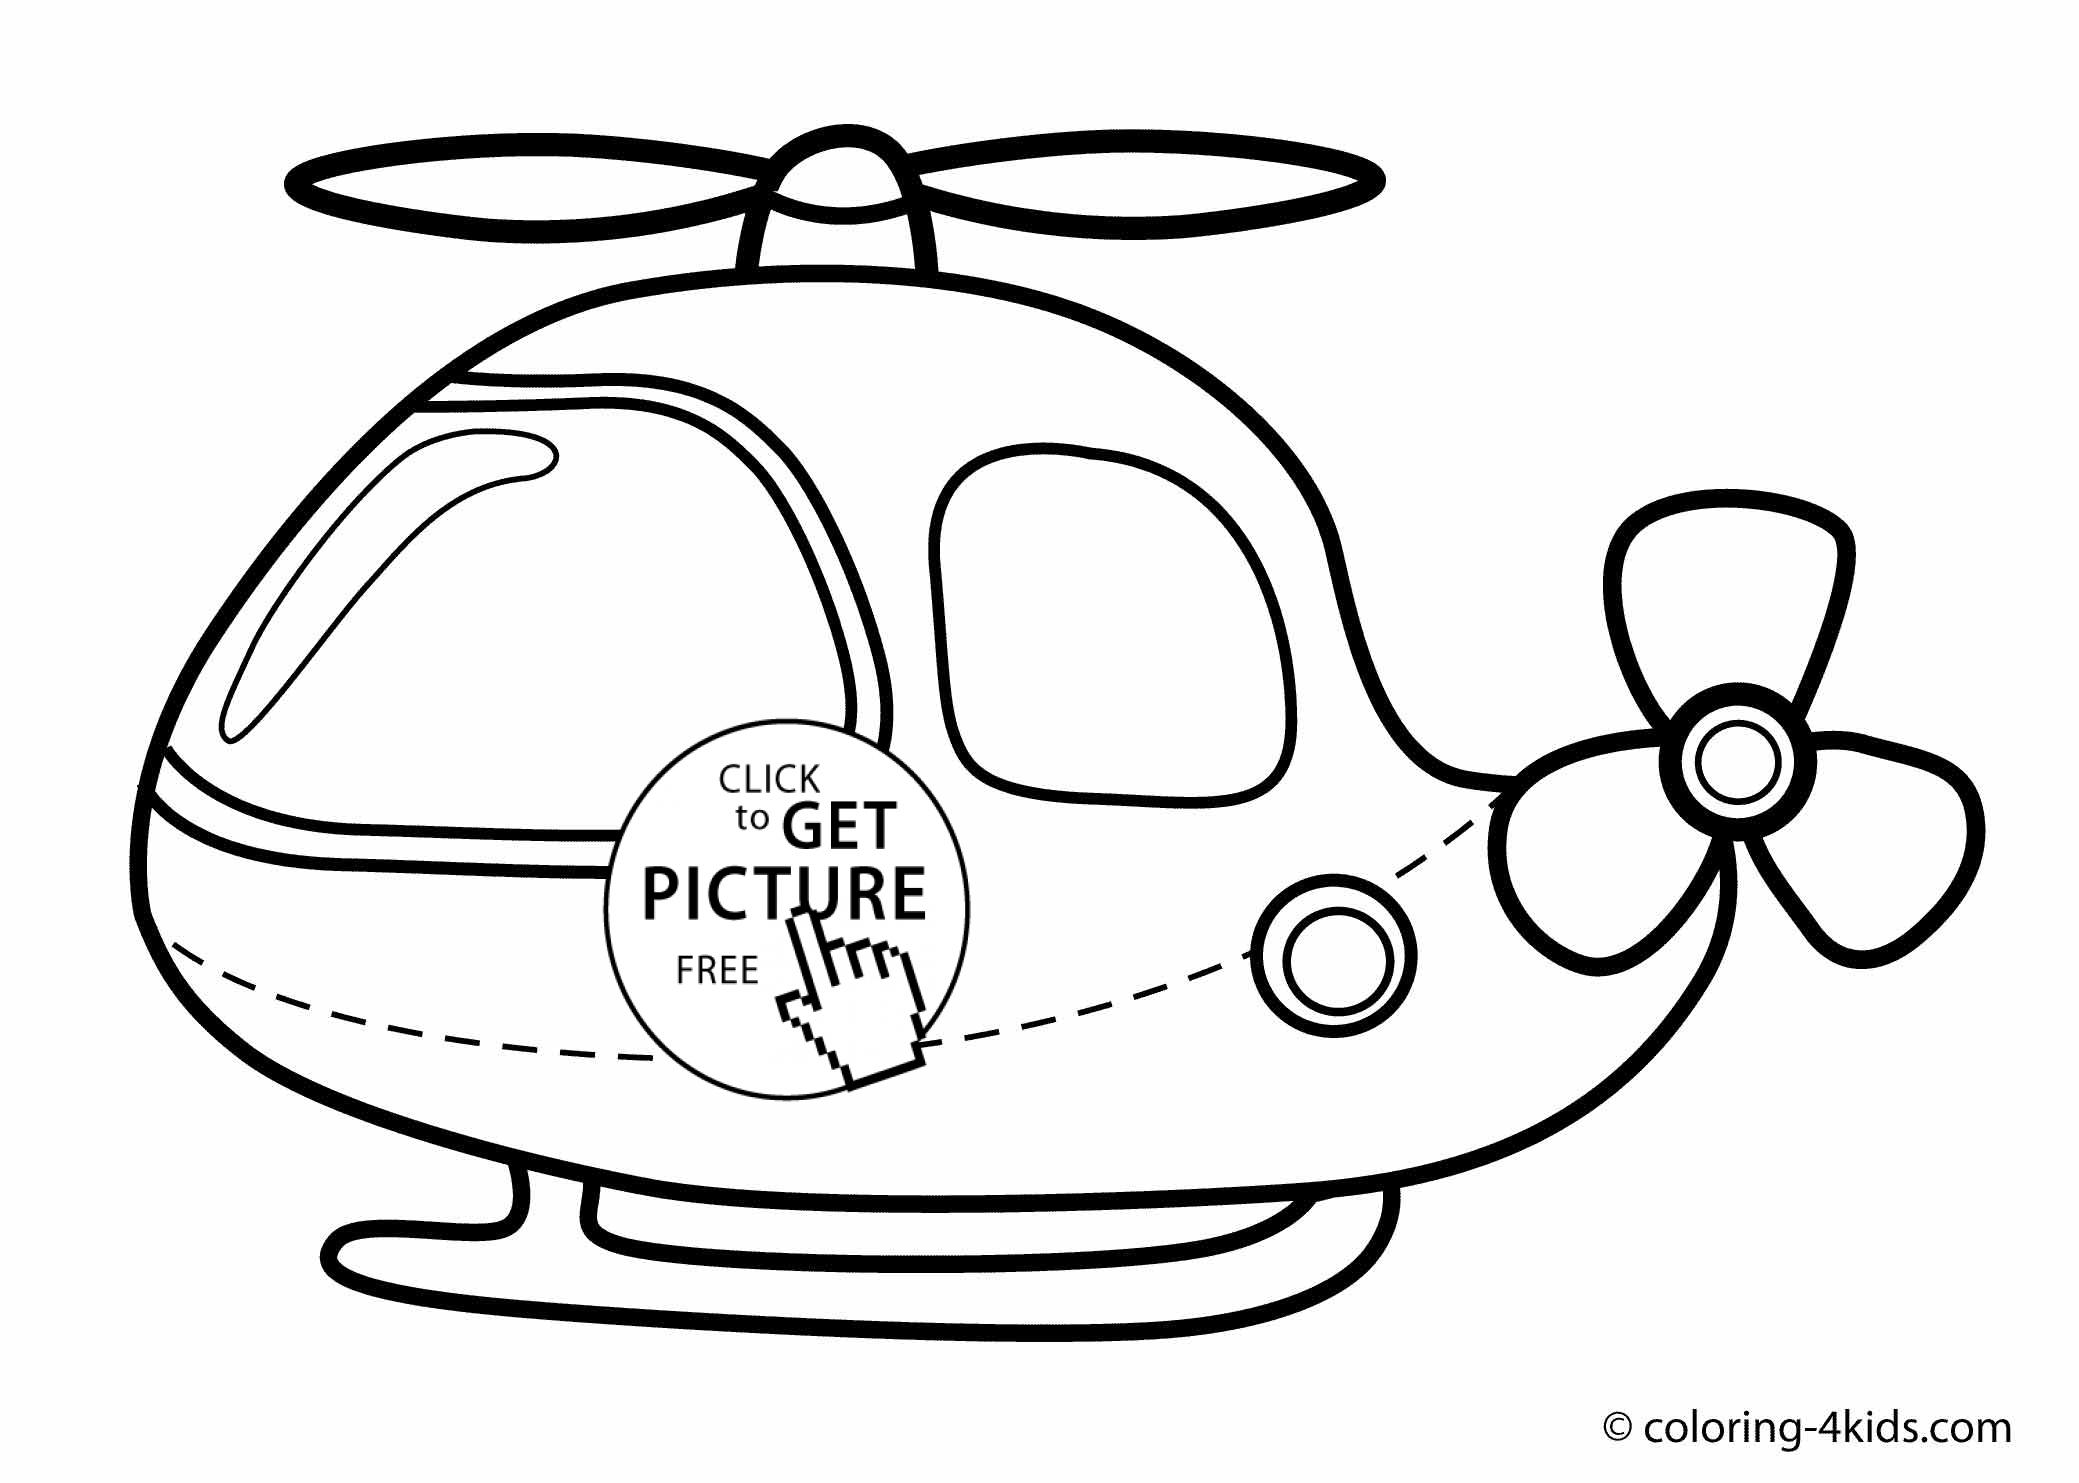 2079x1483 Helicopter Coloring Pages Book For Kids